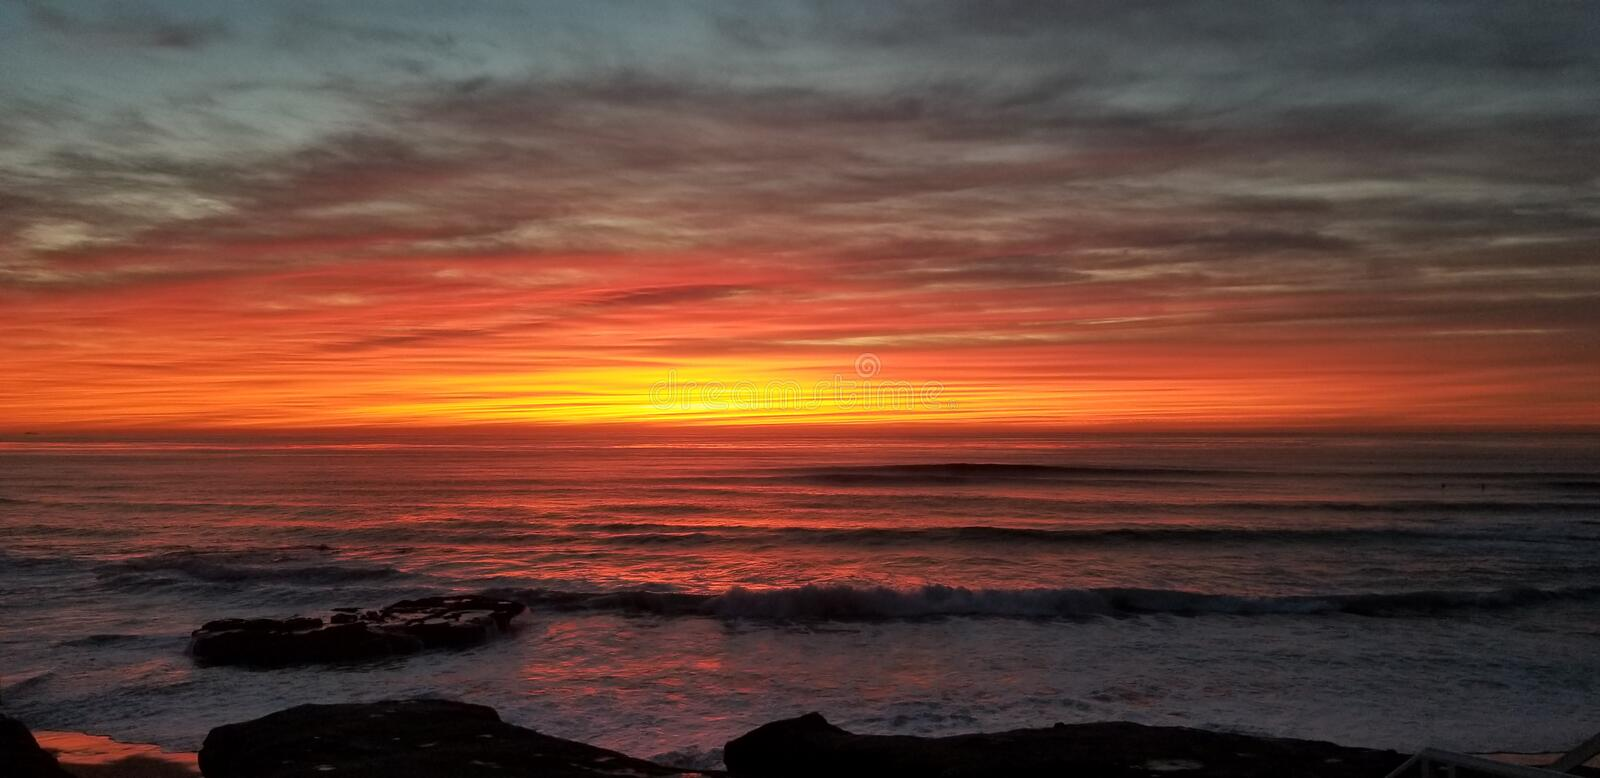 Dramatic Sunset over Pacific Ocean - Waves Crashing on the Rocks royalty free stock photo